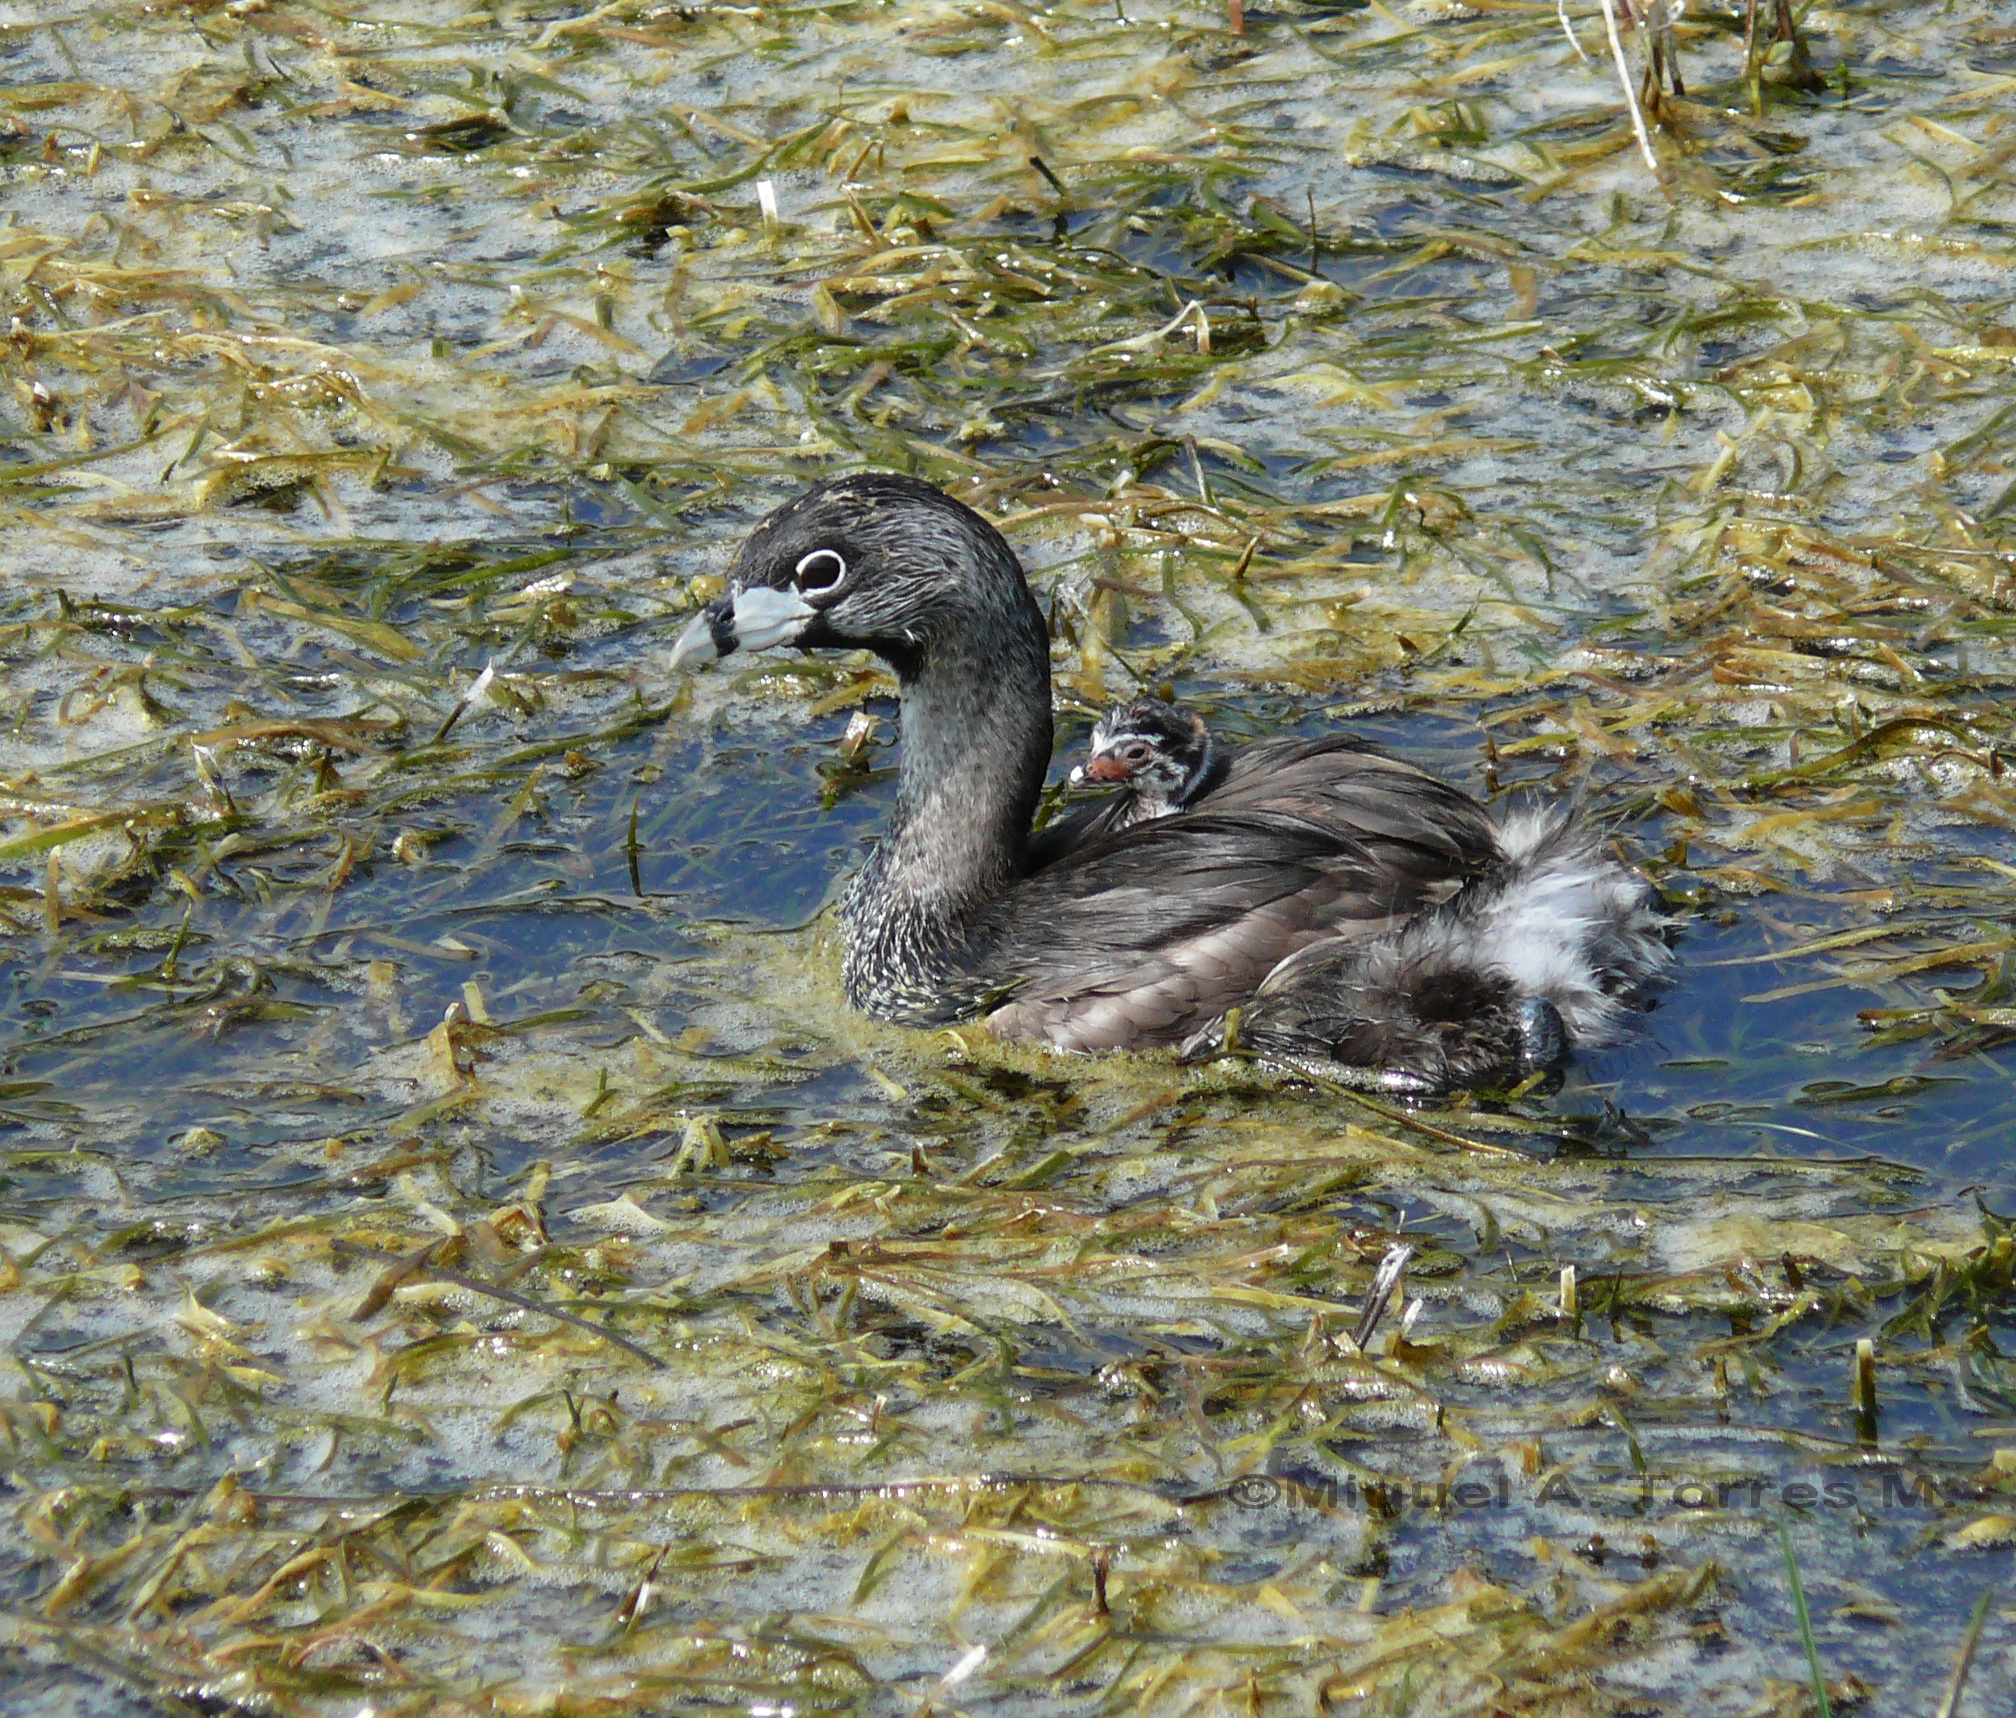 Scientific Name: Pied-billed Grebe - Photo: Miguel A. Torres M.